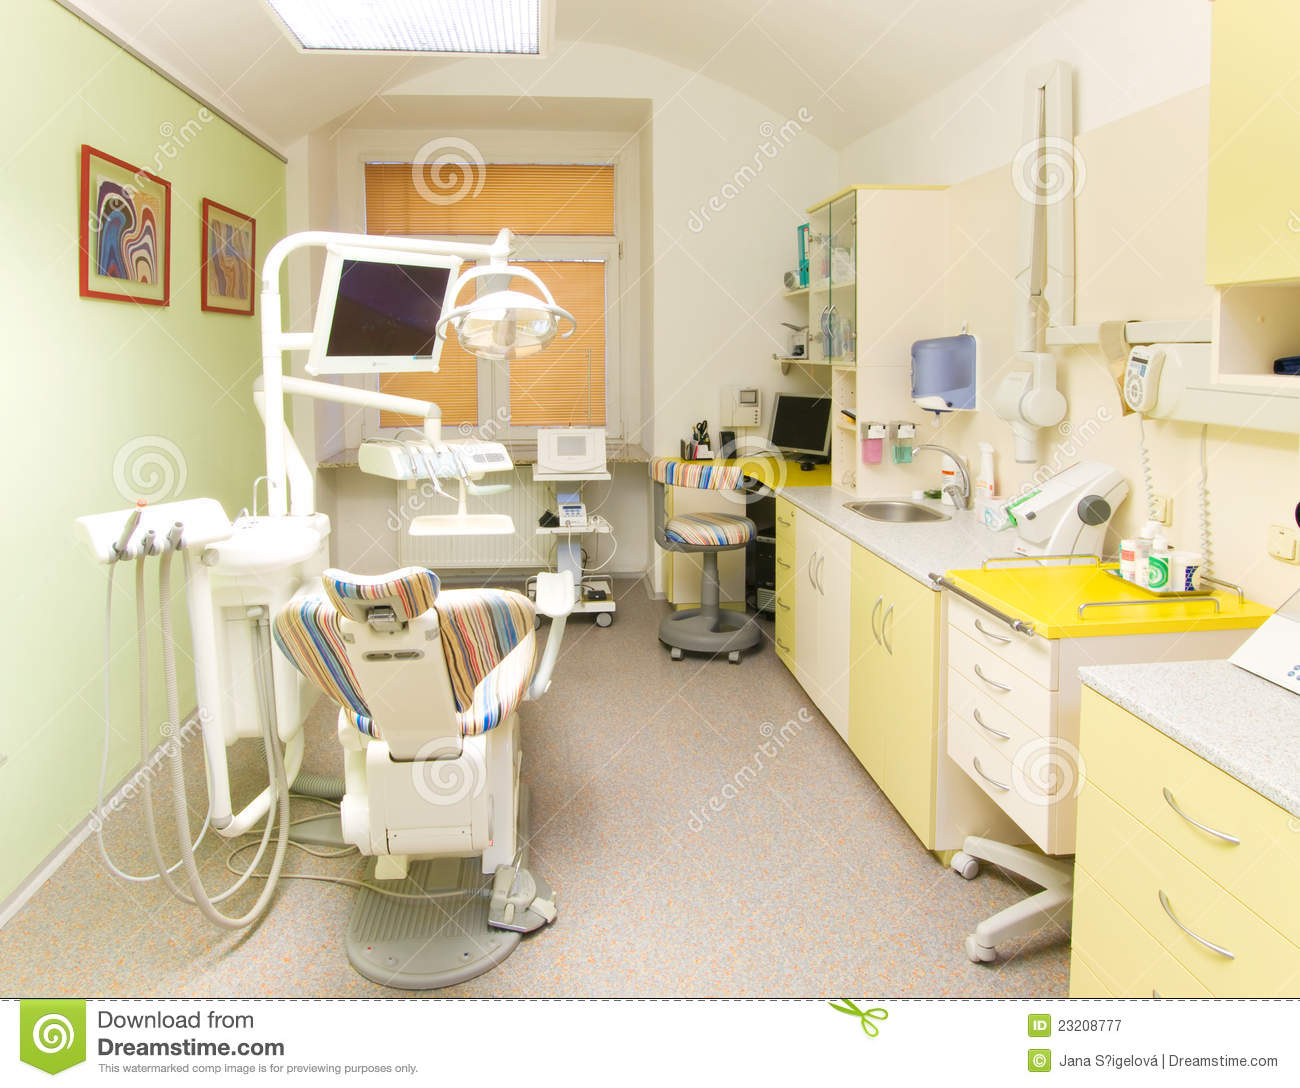 modern dental office royalty free stock photography - image: 23208777